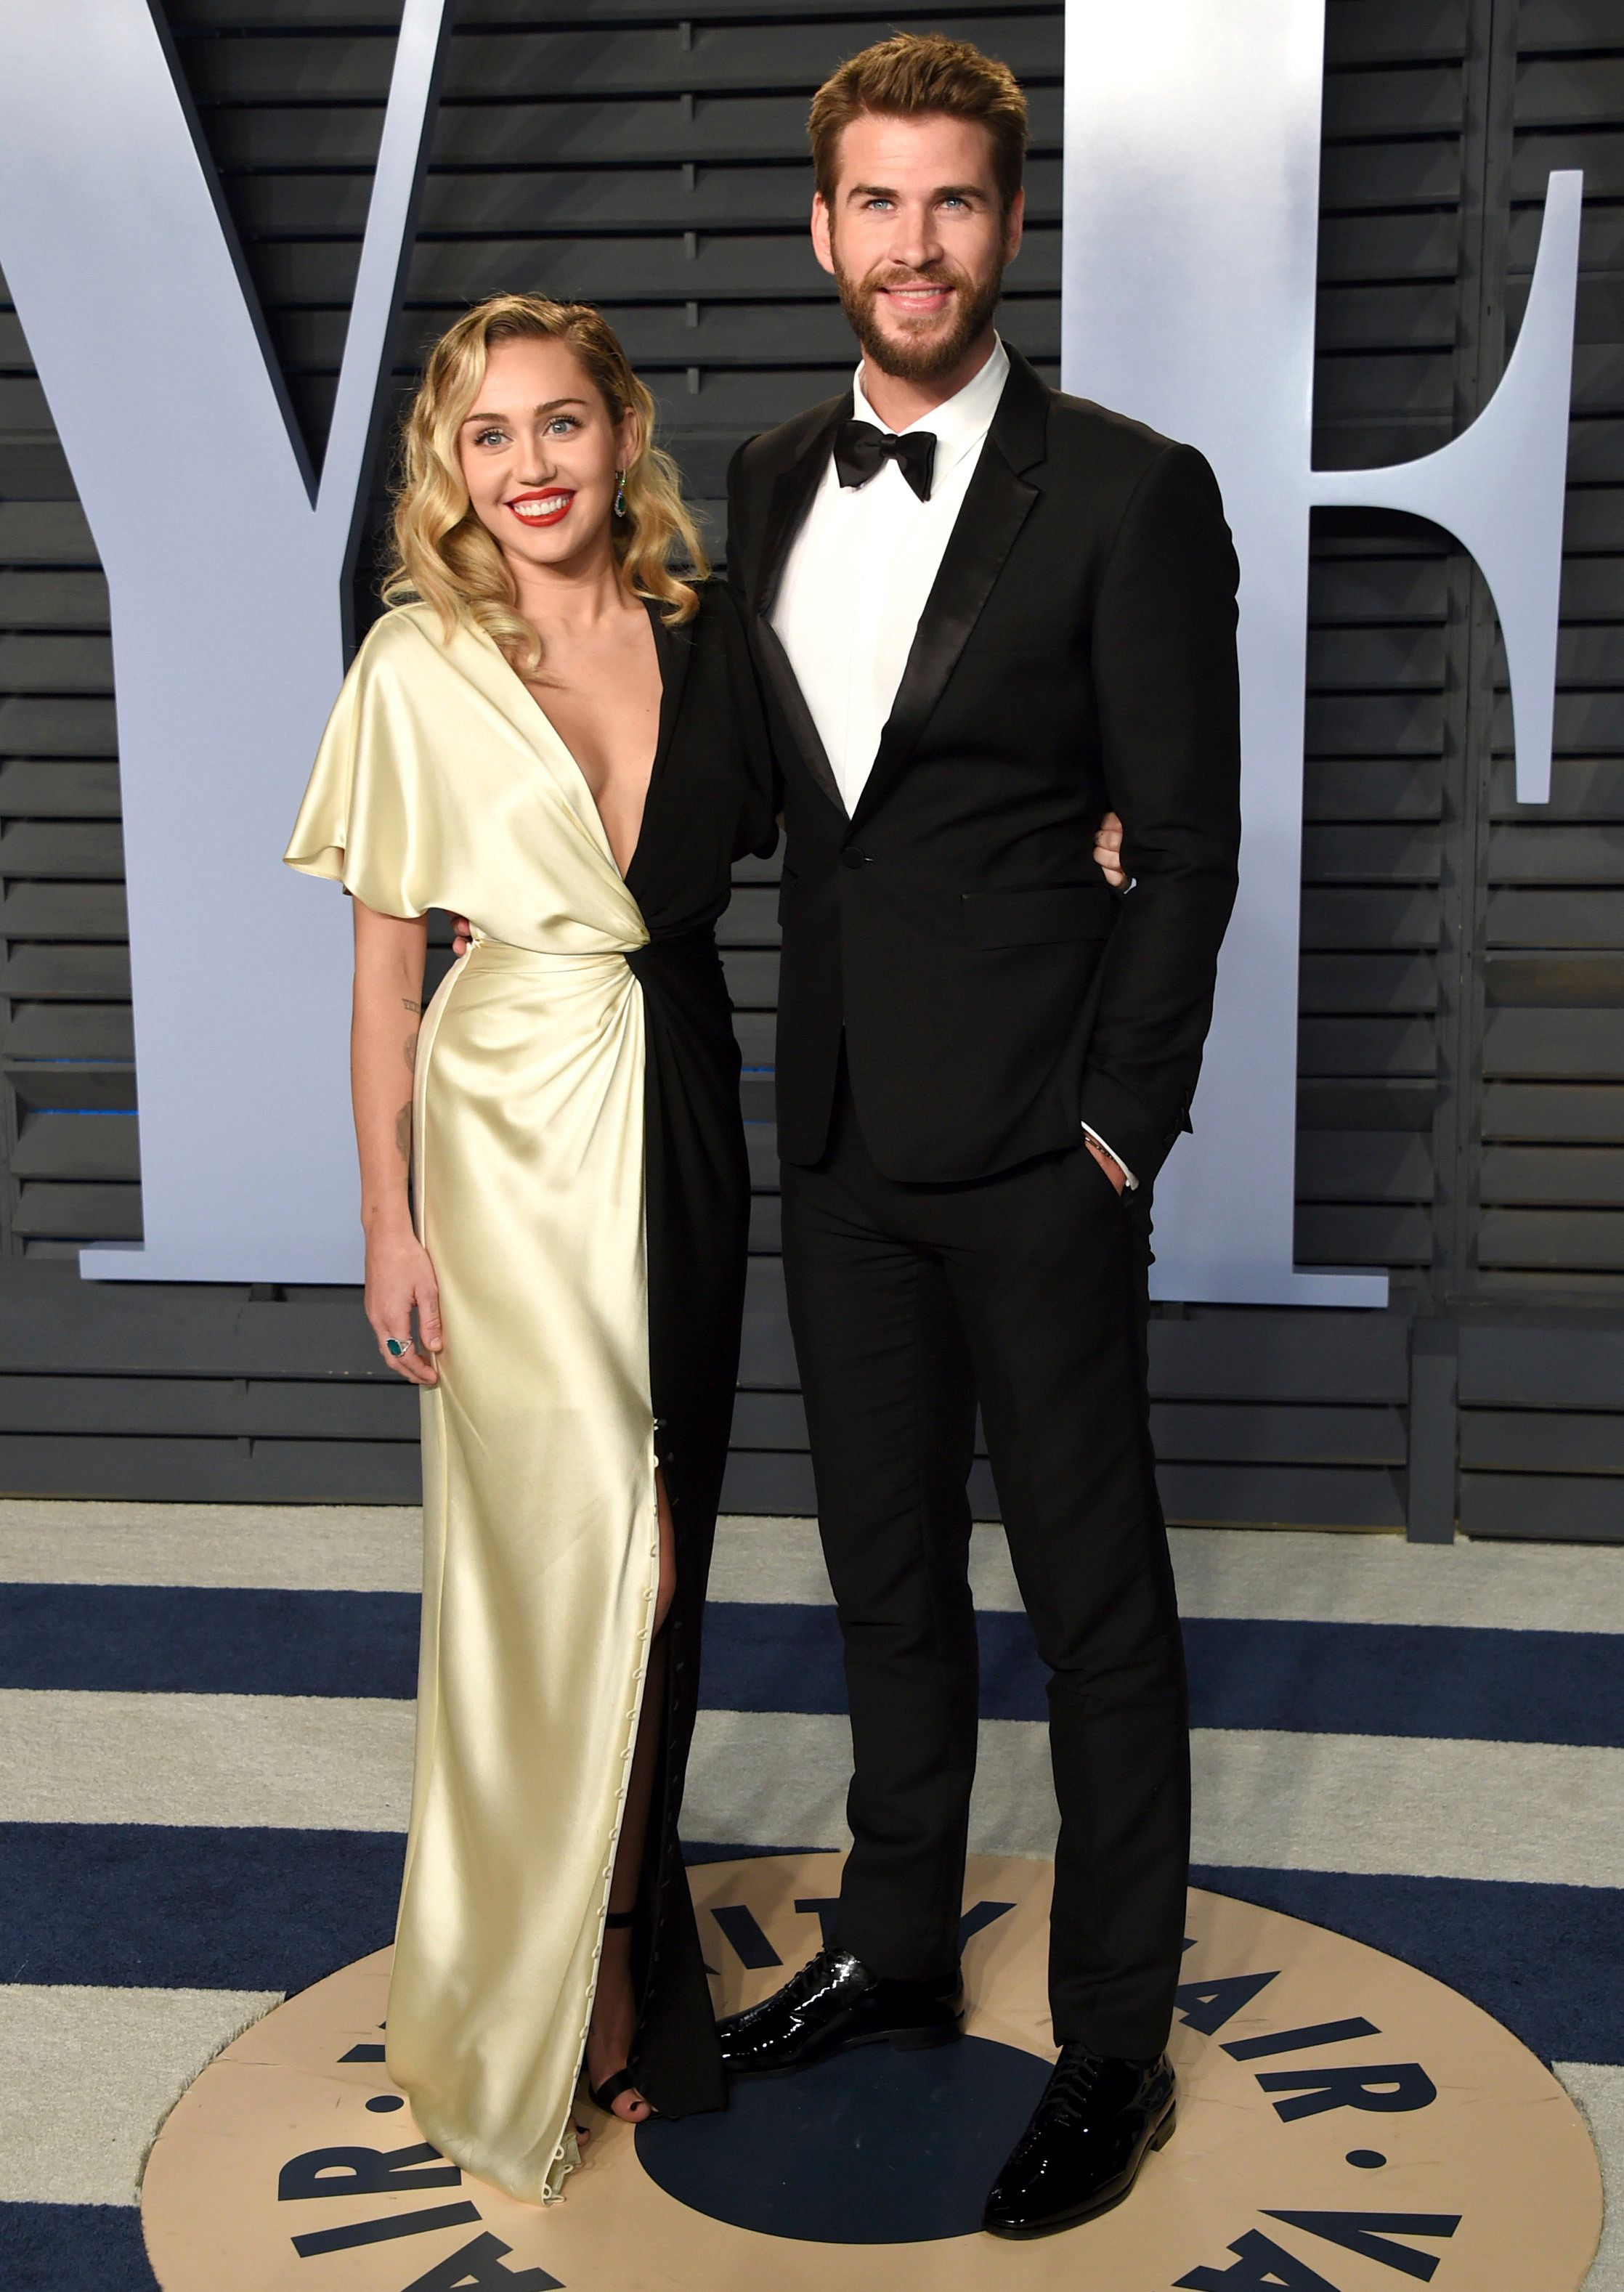 Miley Cyrus and Liam Hemsworth arrive at the Vanity Fair Oscar Party on March 4.